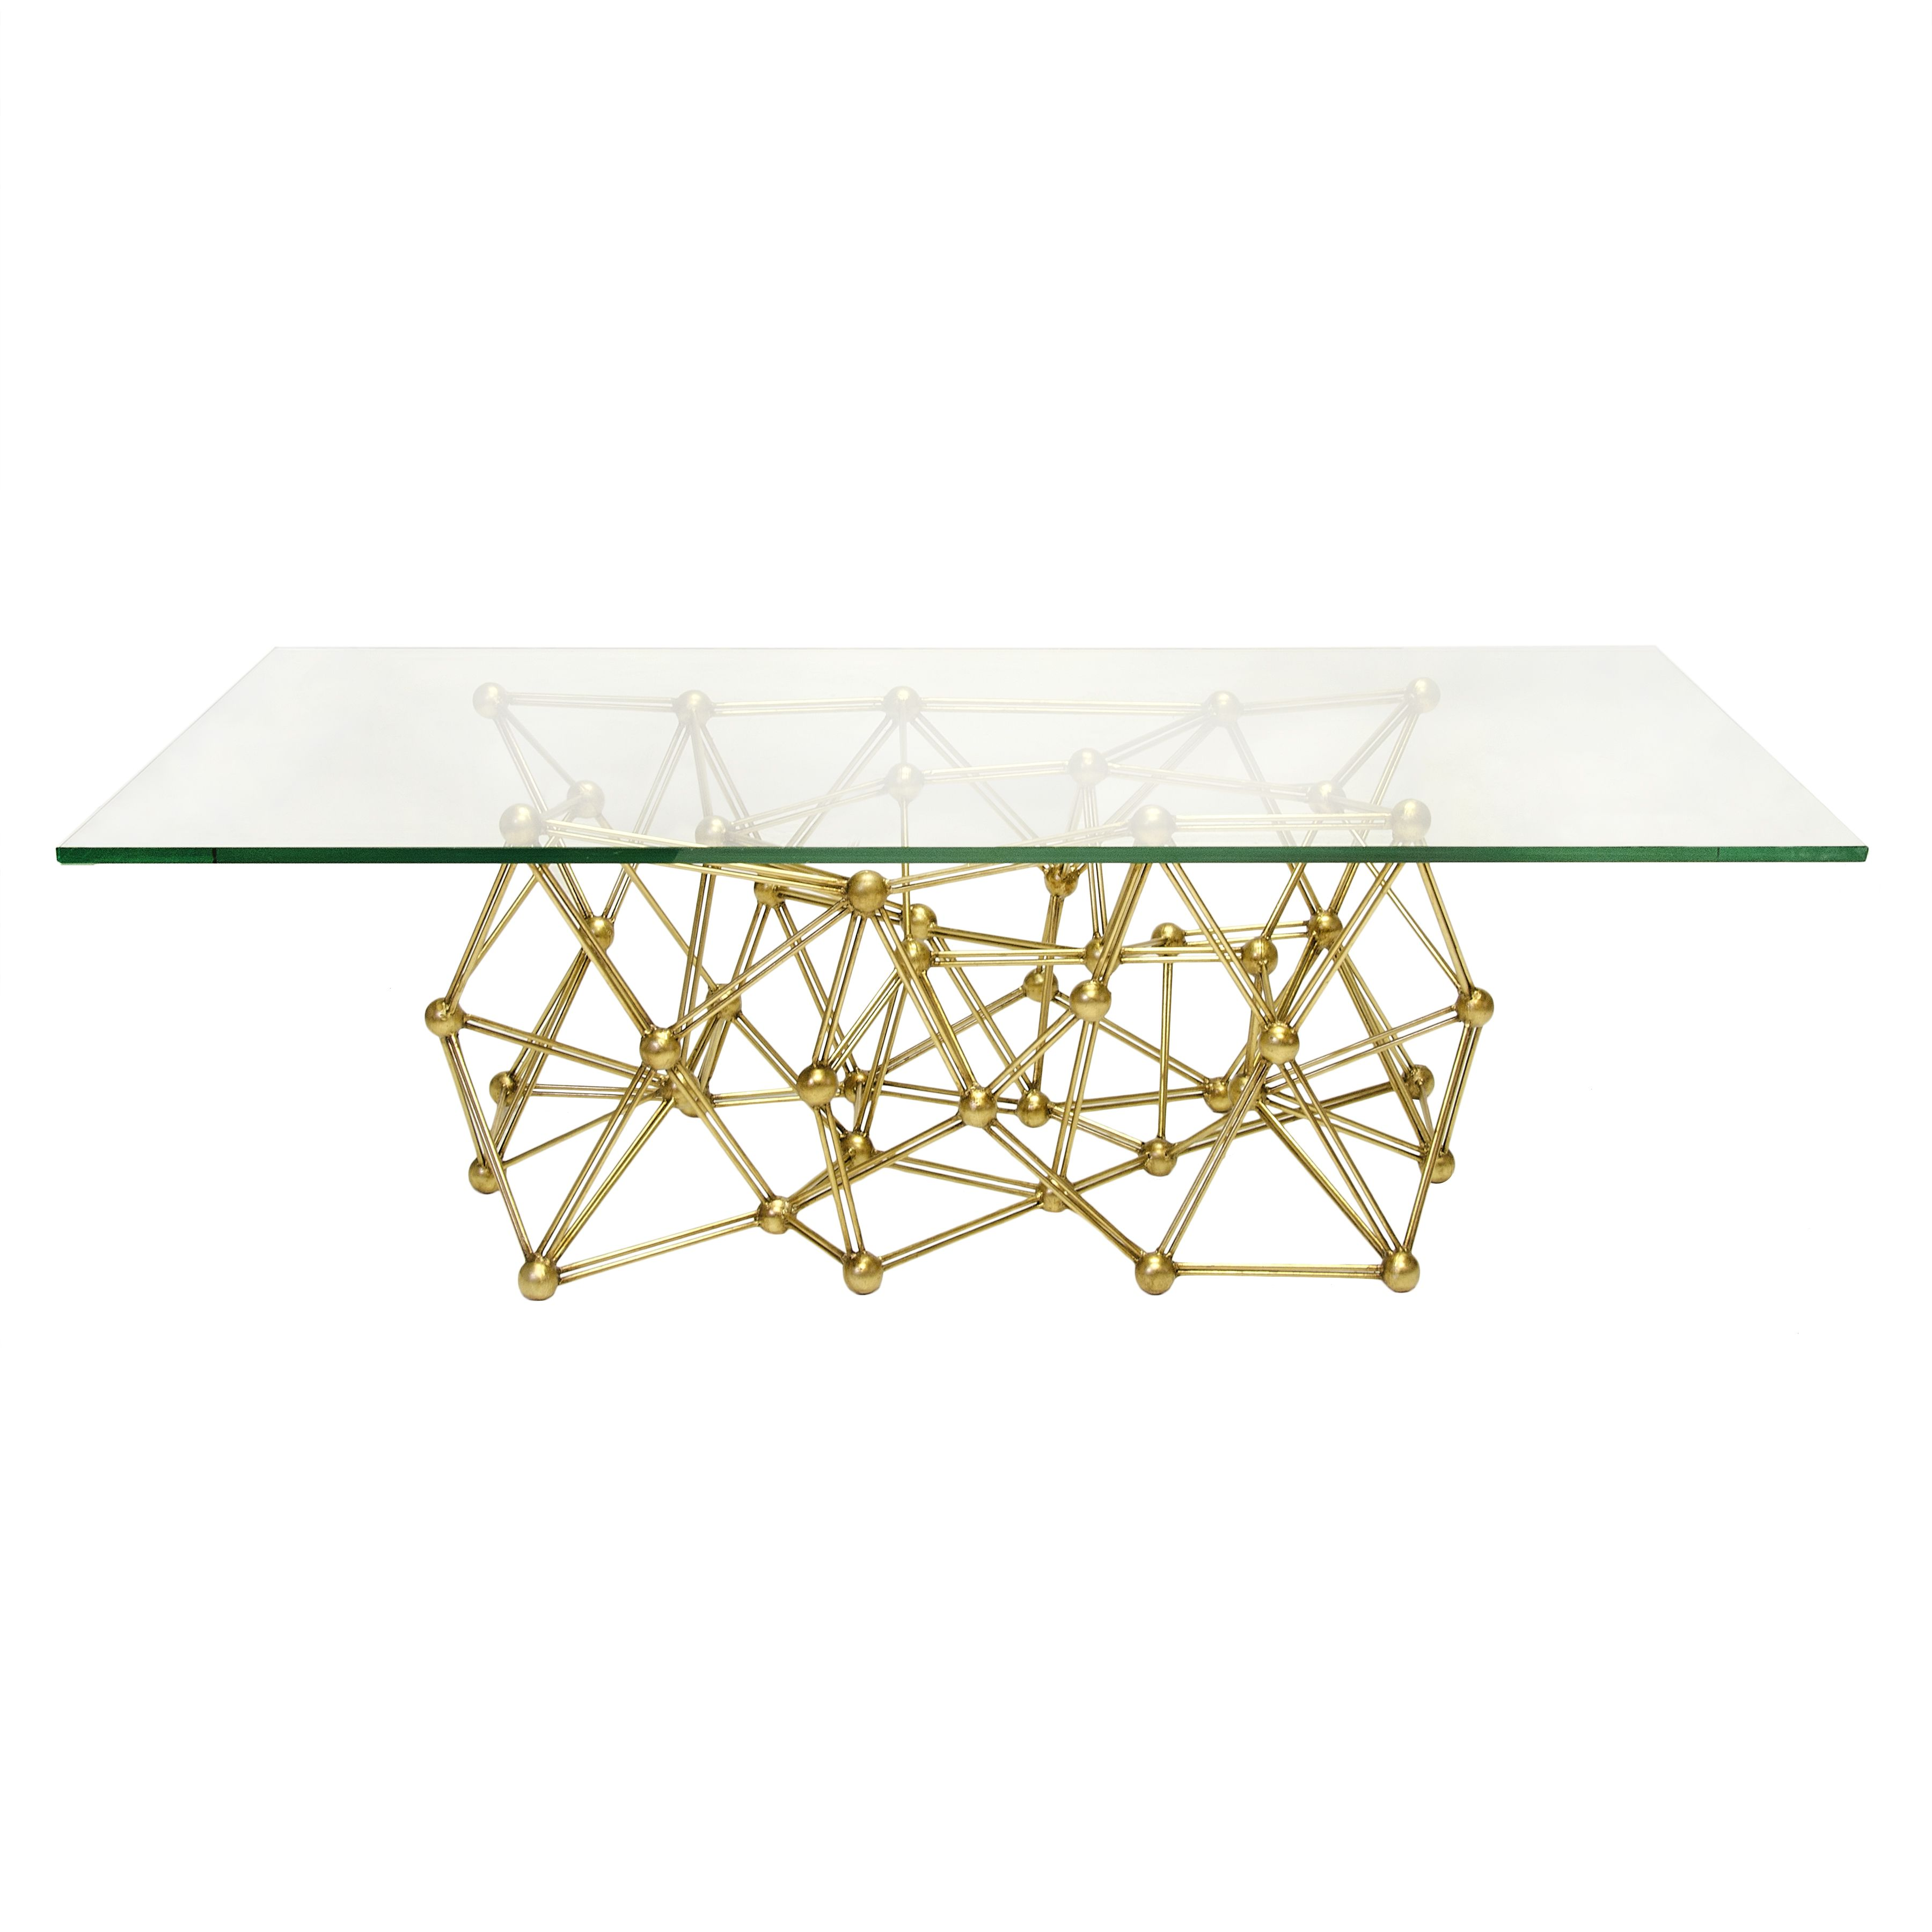 Worlds Away – Molecule CFG – Gold leafed coffee table base with